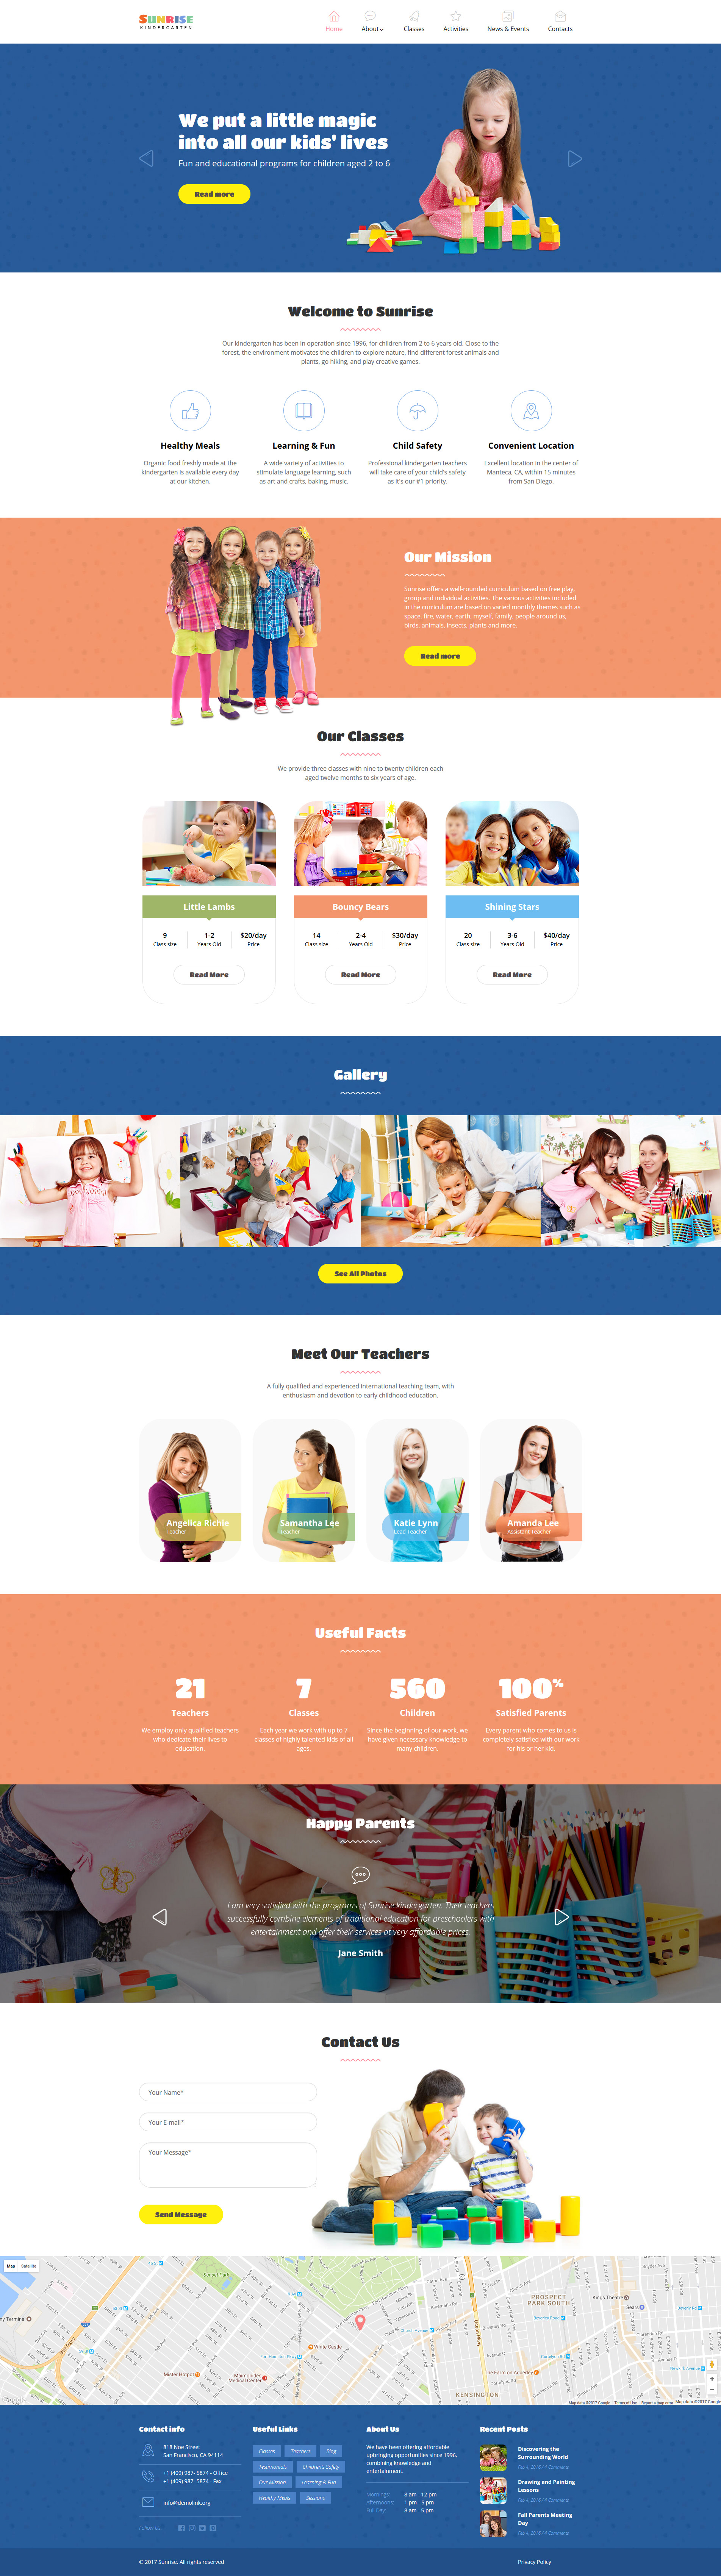 """Sunrise - Kids Center & Kindergarten Responsive"" 响应式网页模板 #58894"